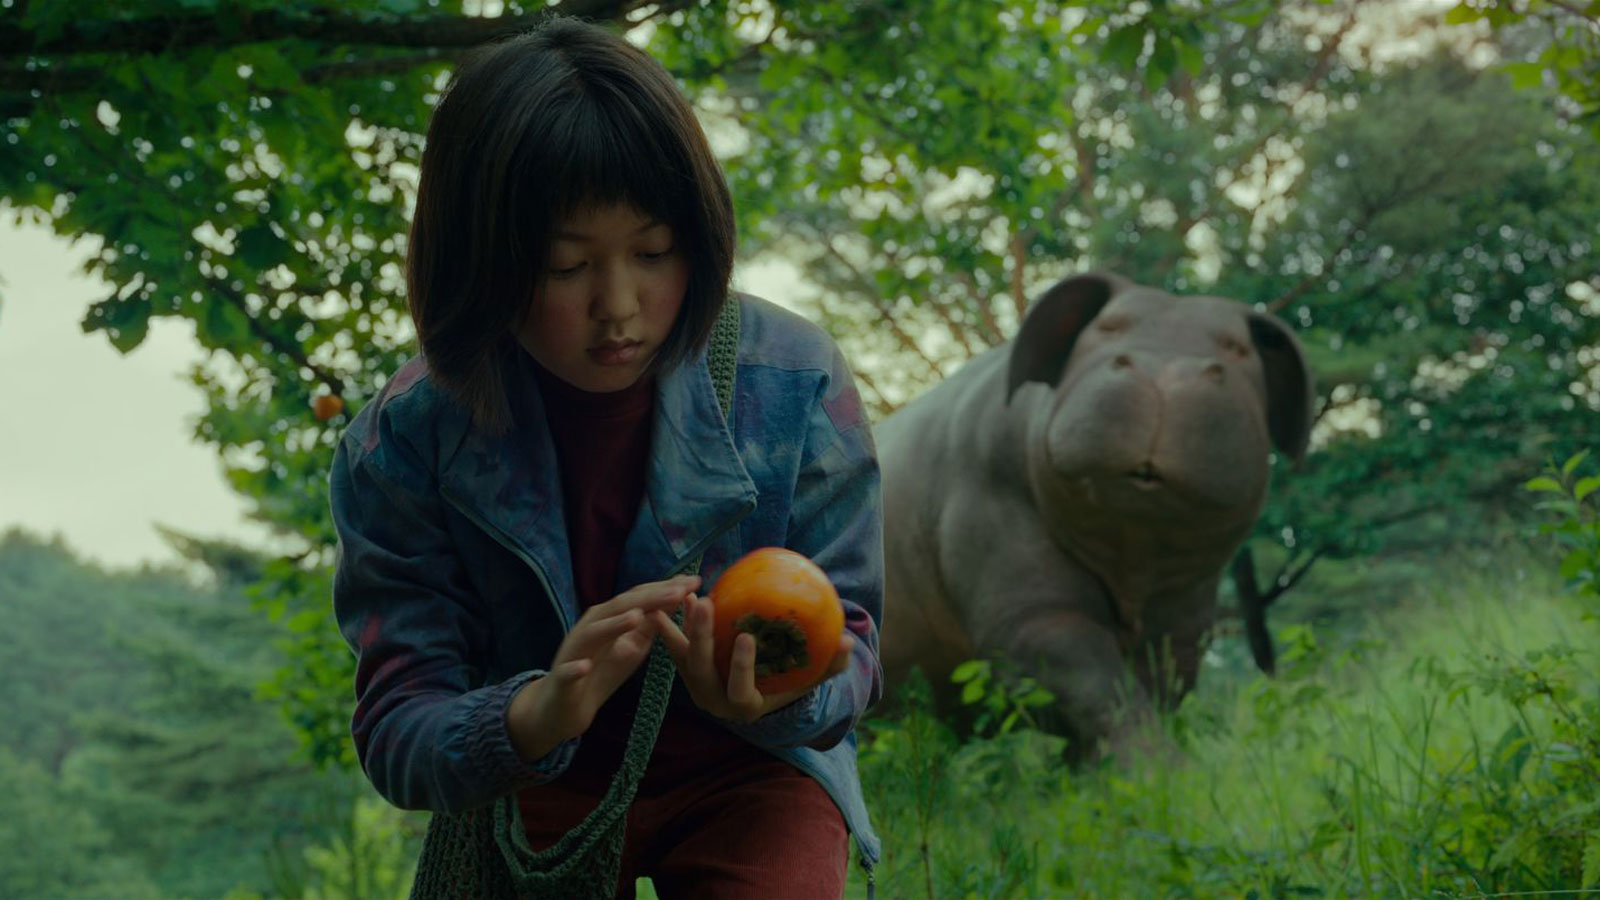 okja-what-to-watch-july-fourth-FT-BLOG0617.jpg